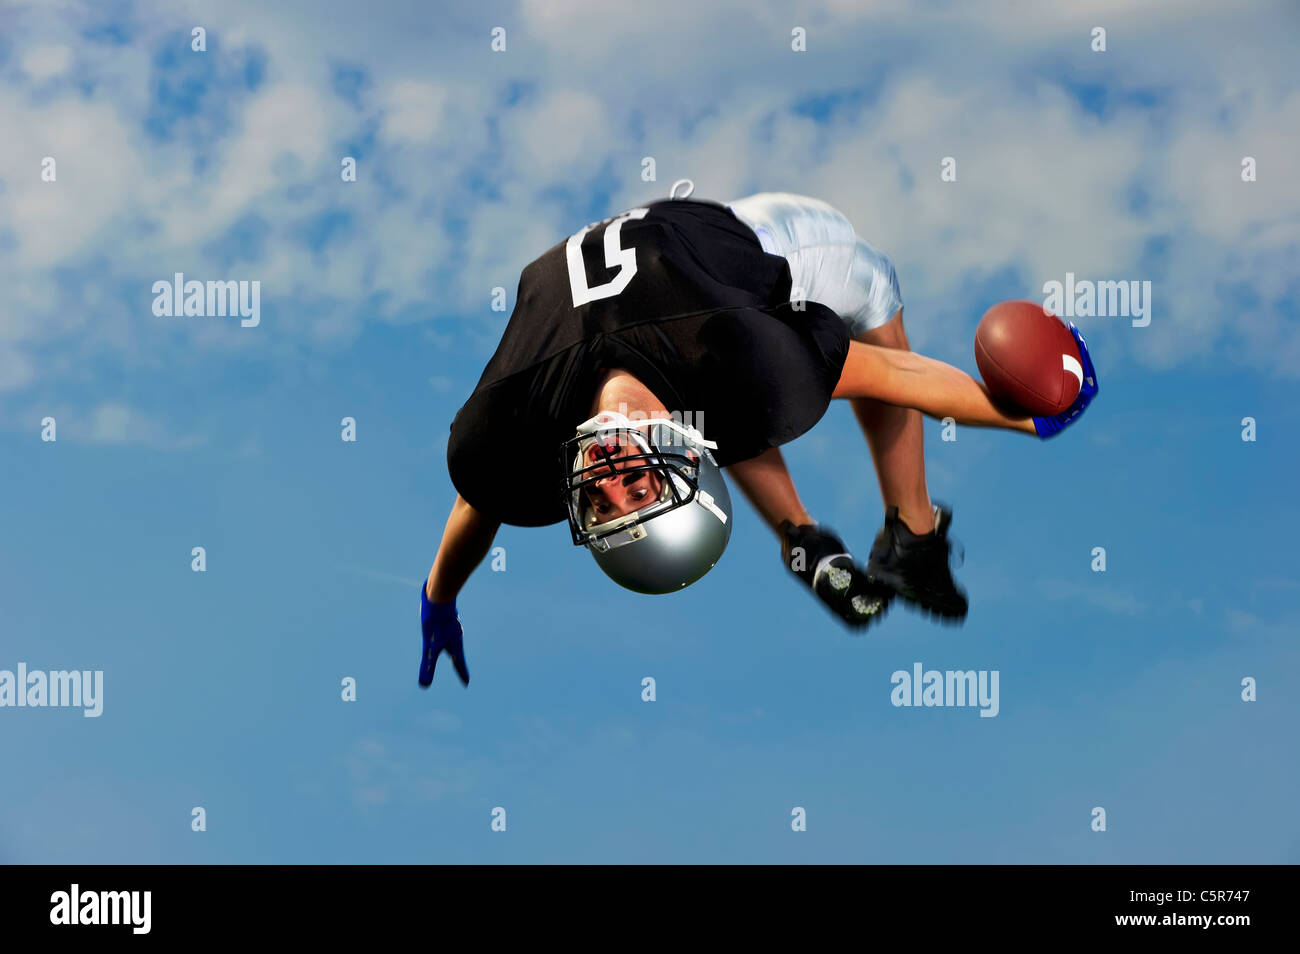 American Footballer celebrates - Stock Image